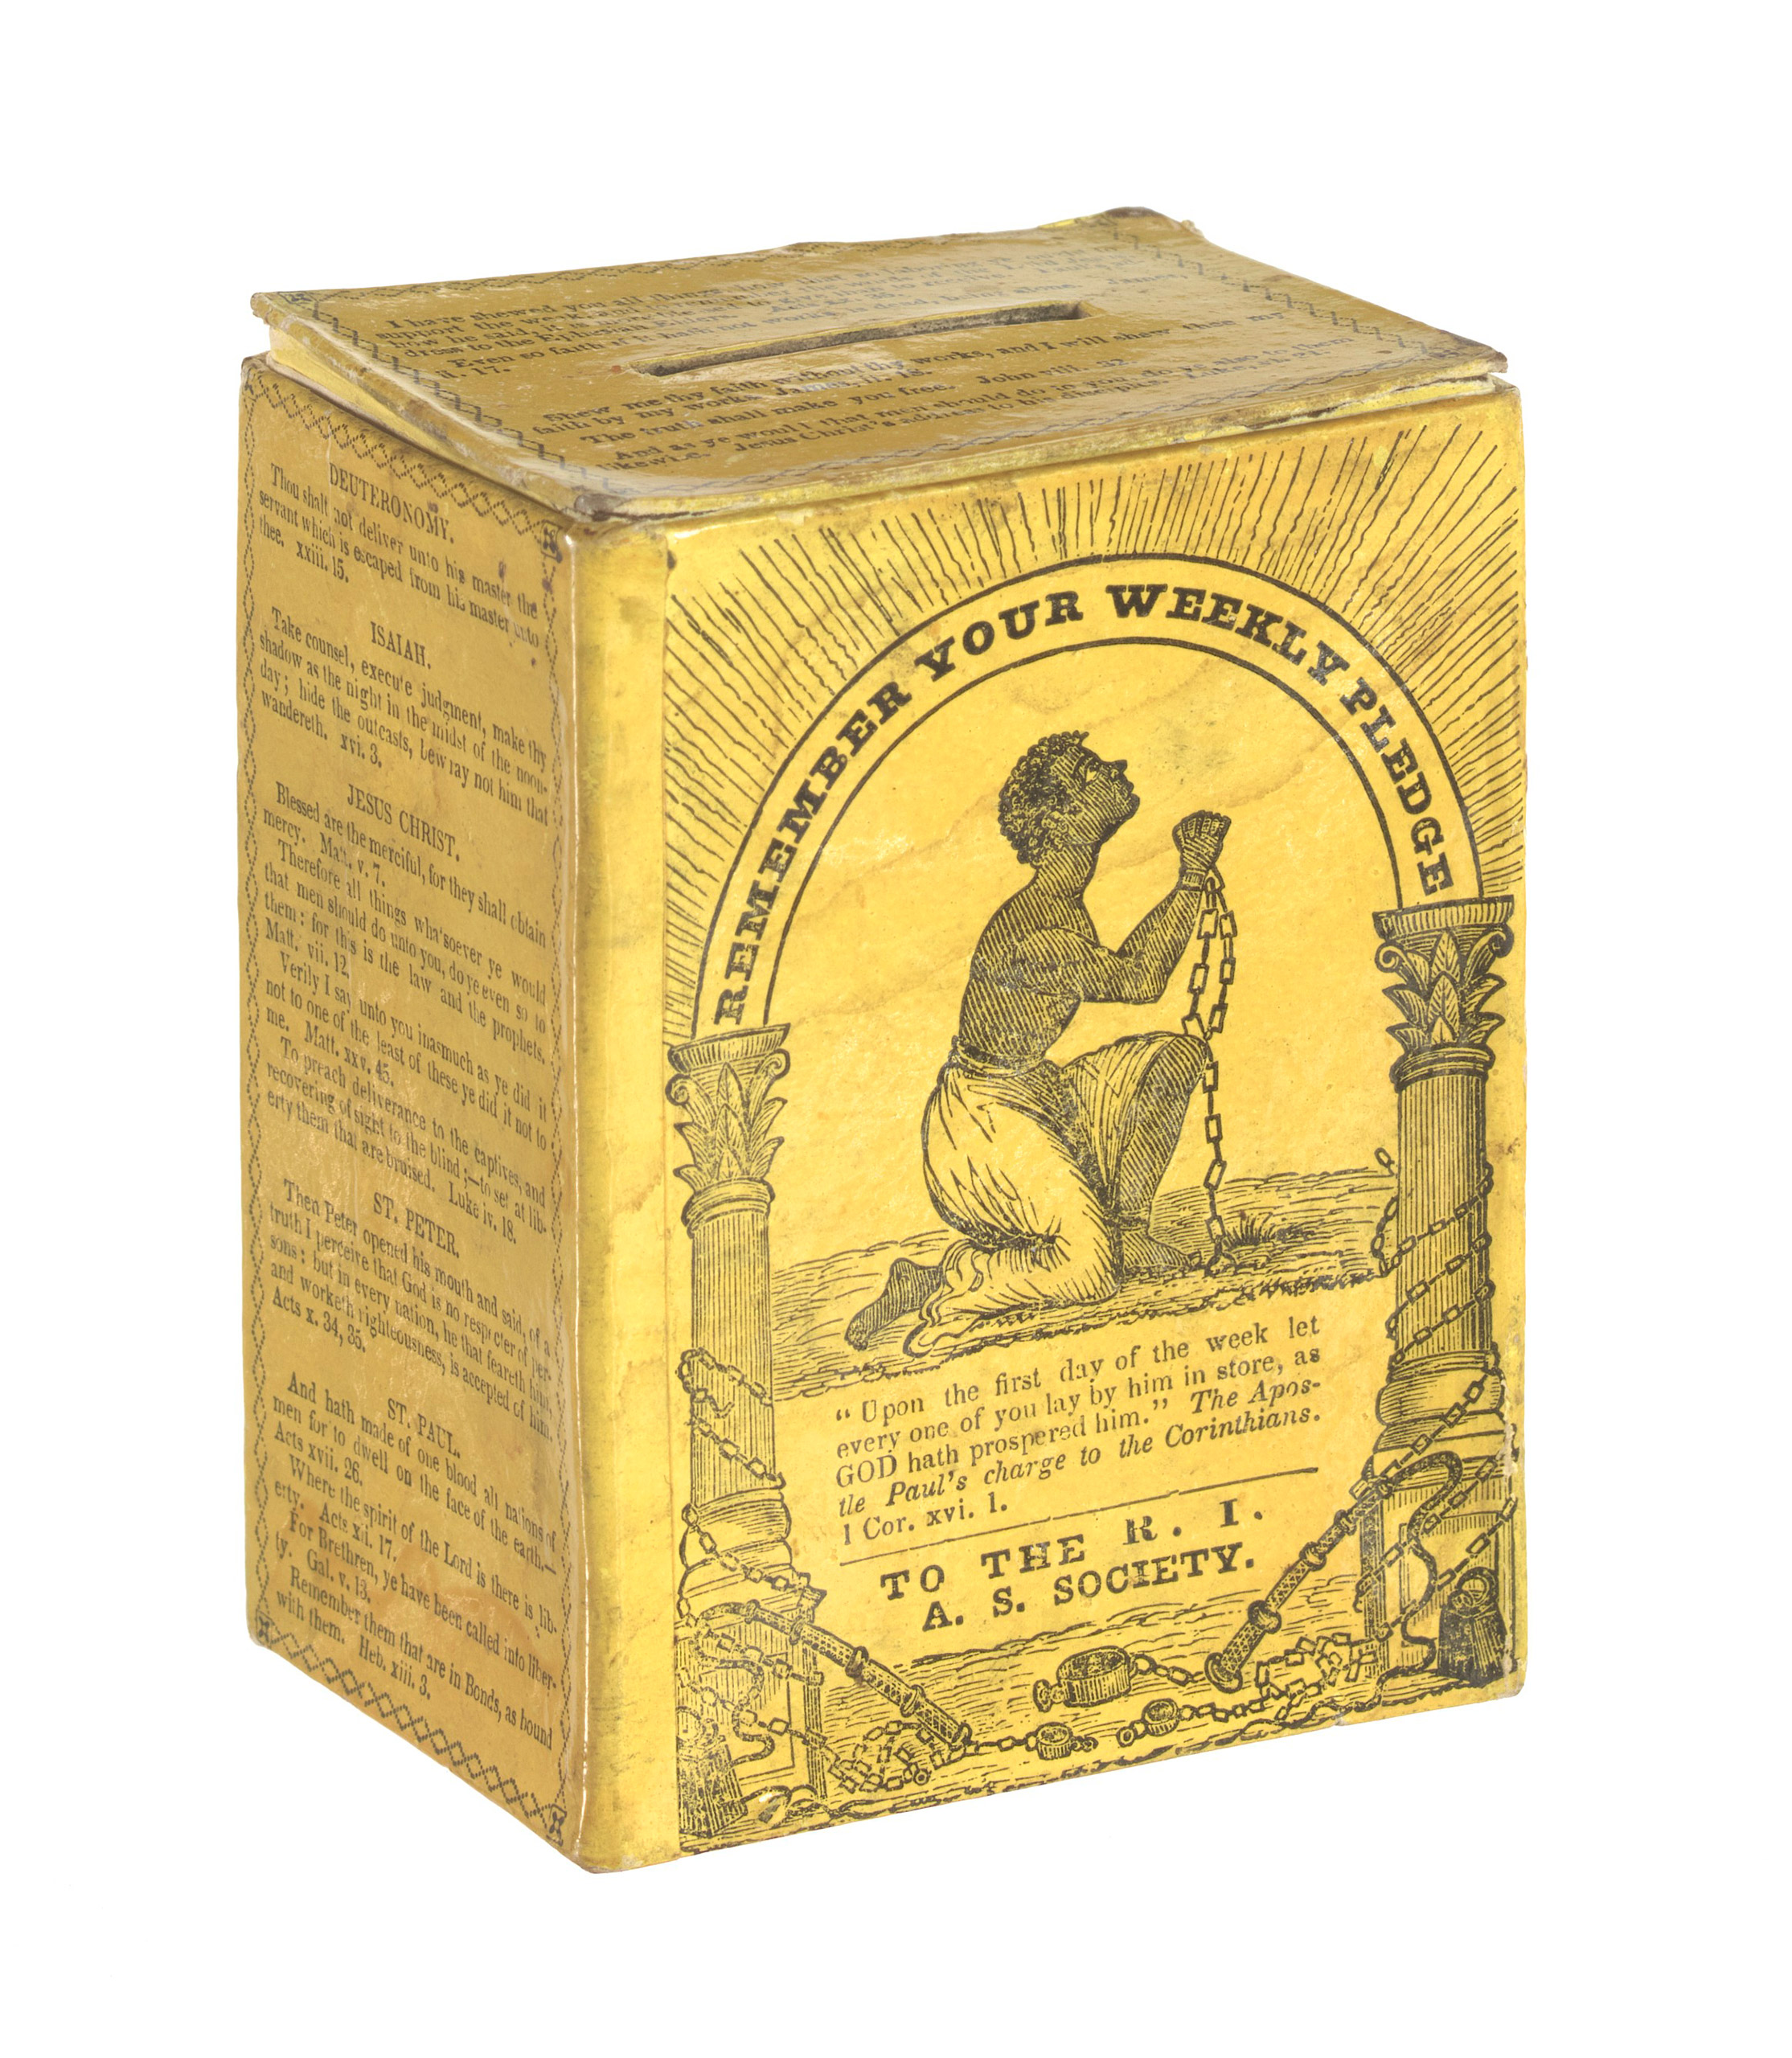 Collection box of the Rhode Island Anti-Slavery Society, owned by Garrison family, ca. 1830s - 1850s.